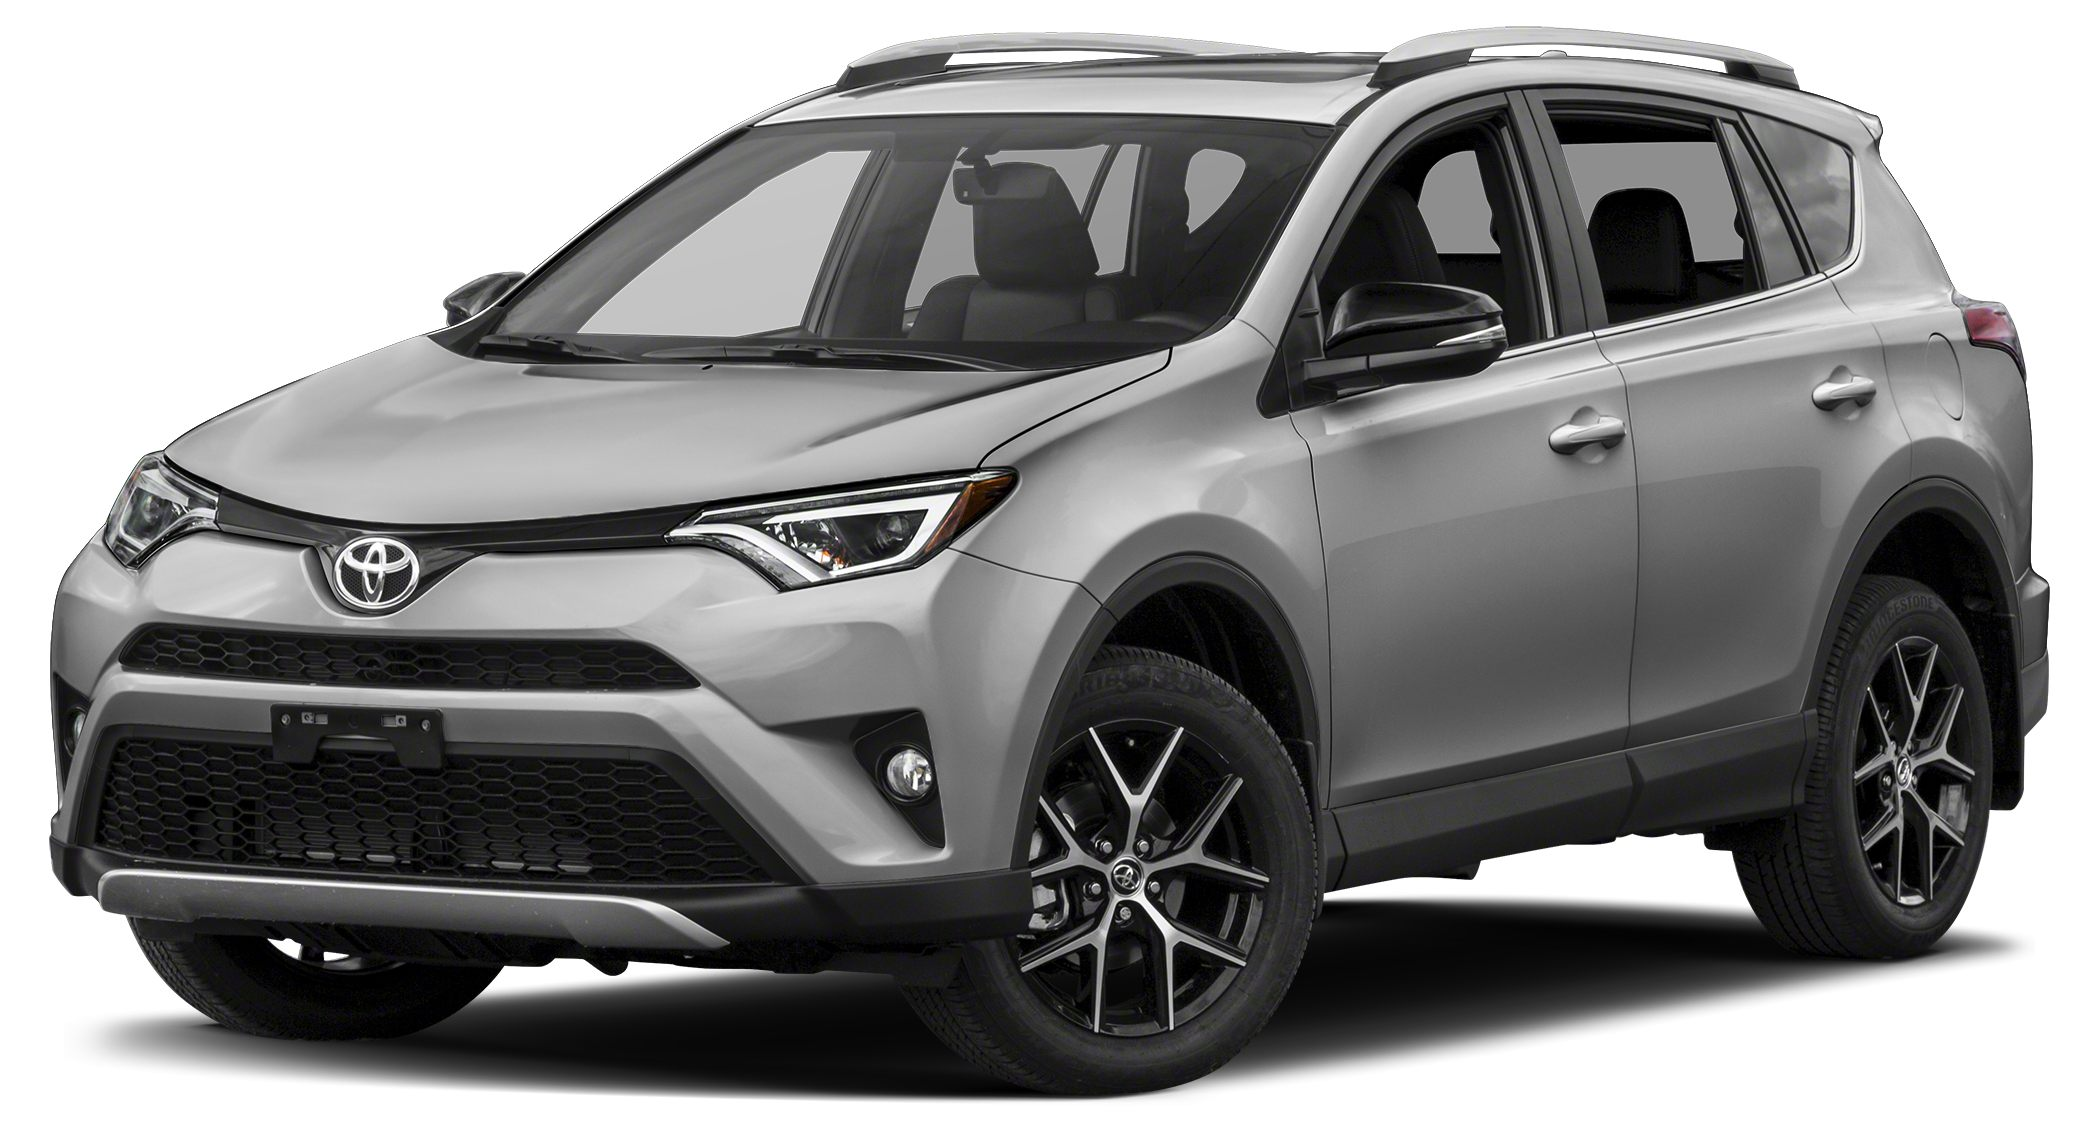 2016 Toyota RAV4 SE Introducing the 2016 Toyota RAV4 Feature-packed and decked out Toyota priori